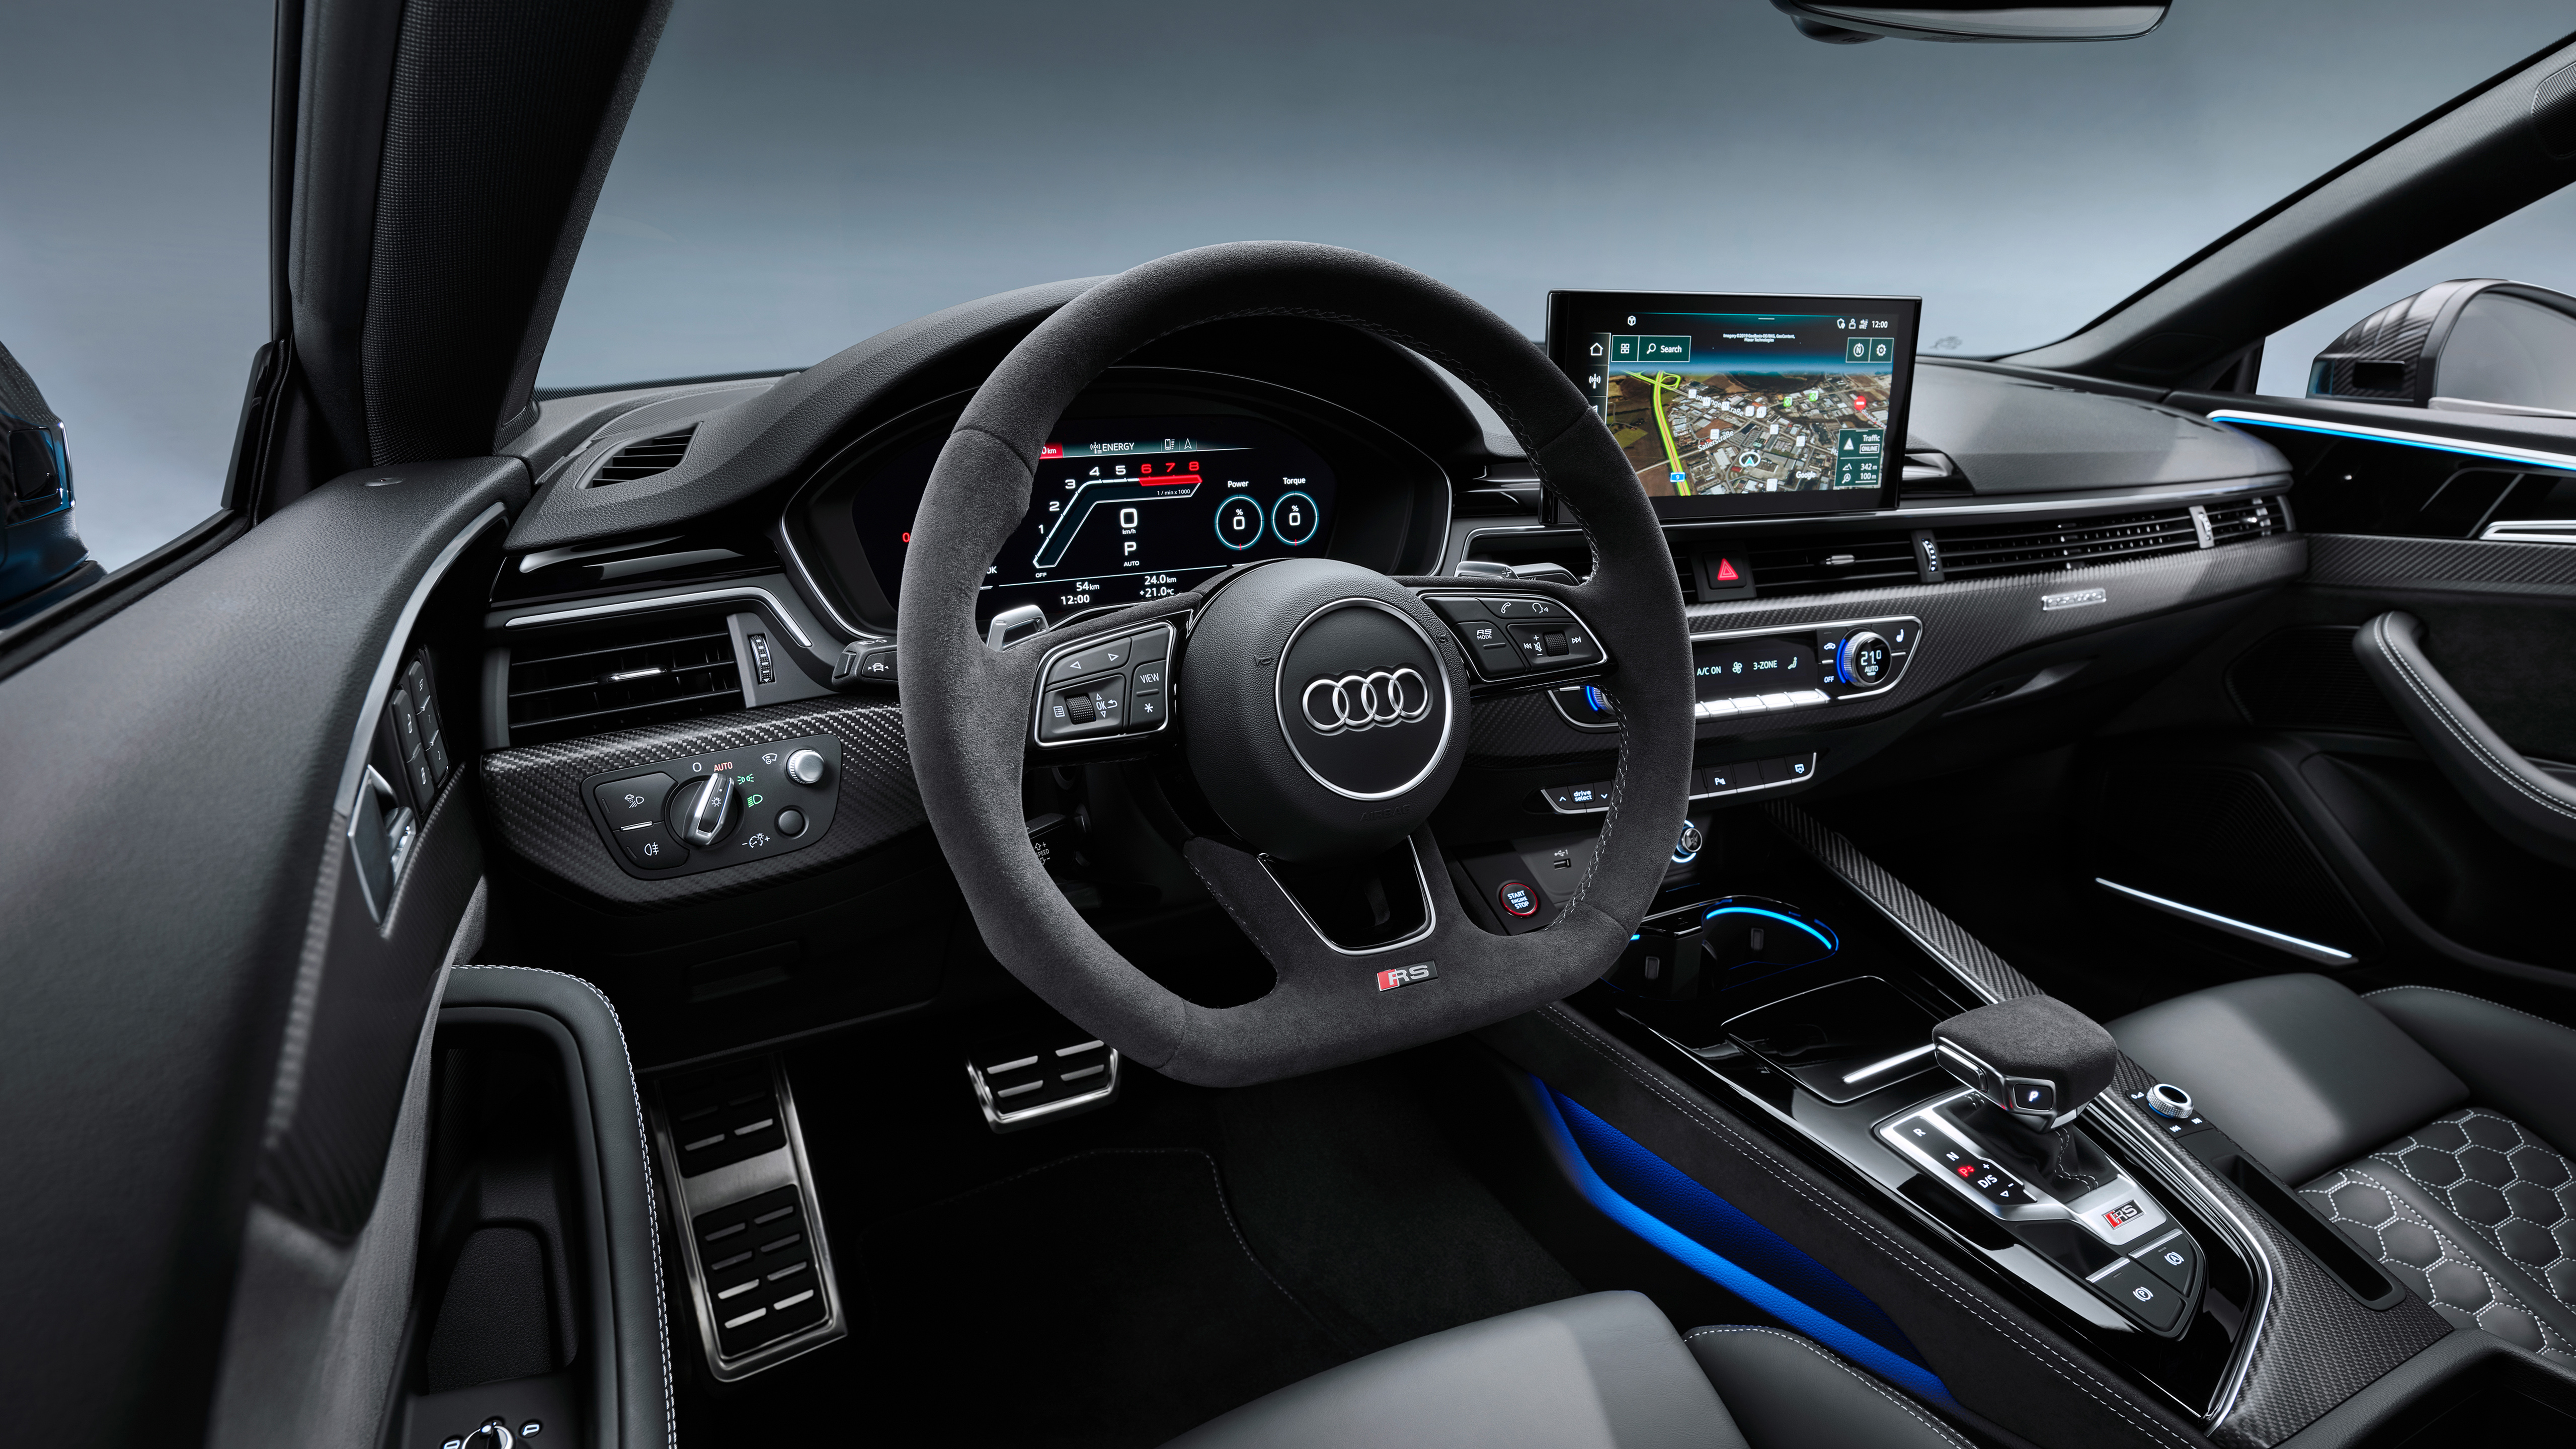 Audi Rs 5 Coupe 2019 4k Interior Wallpaper Hd Car Wallpapers Id 13896